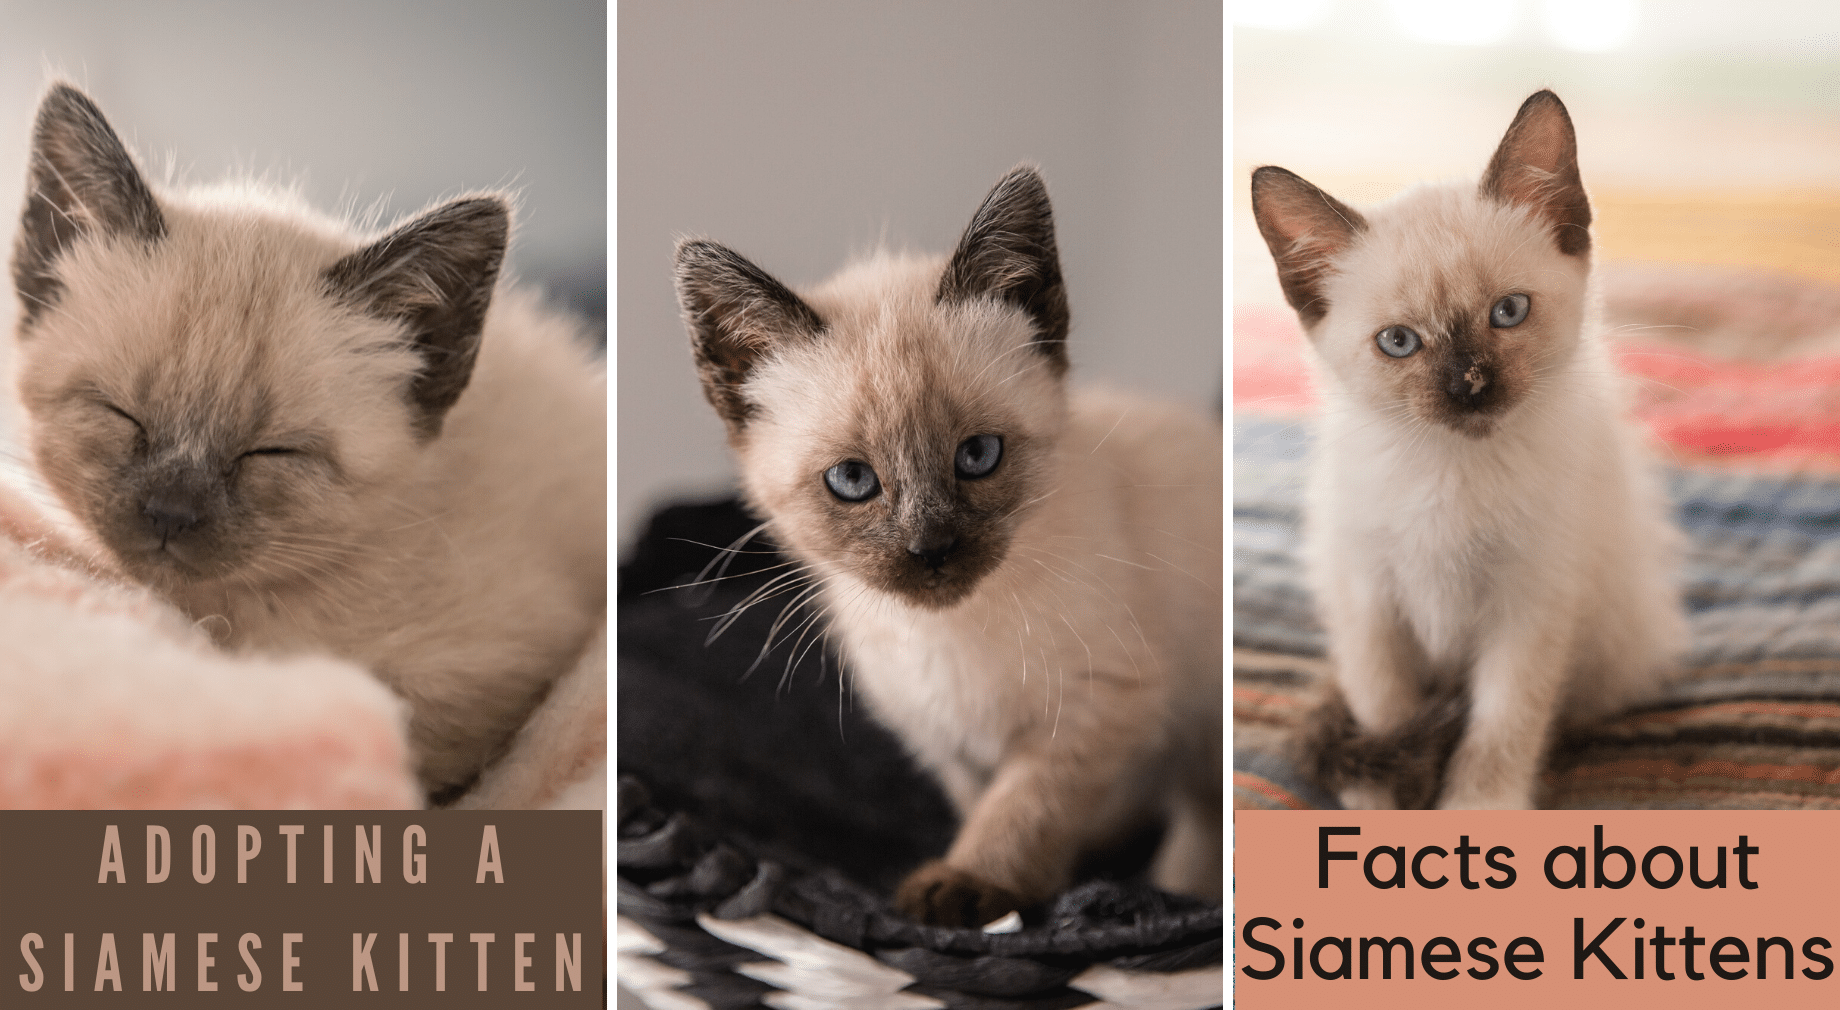 How To Adopt A Siamese Kitten Siamese Of Day